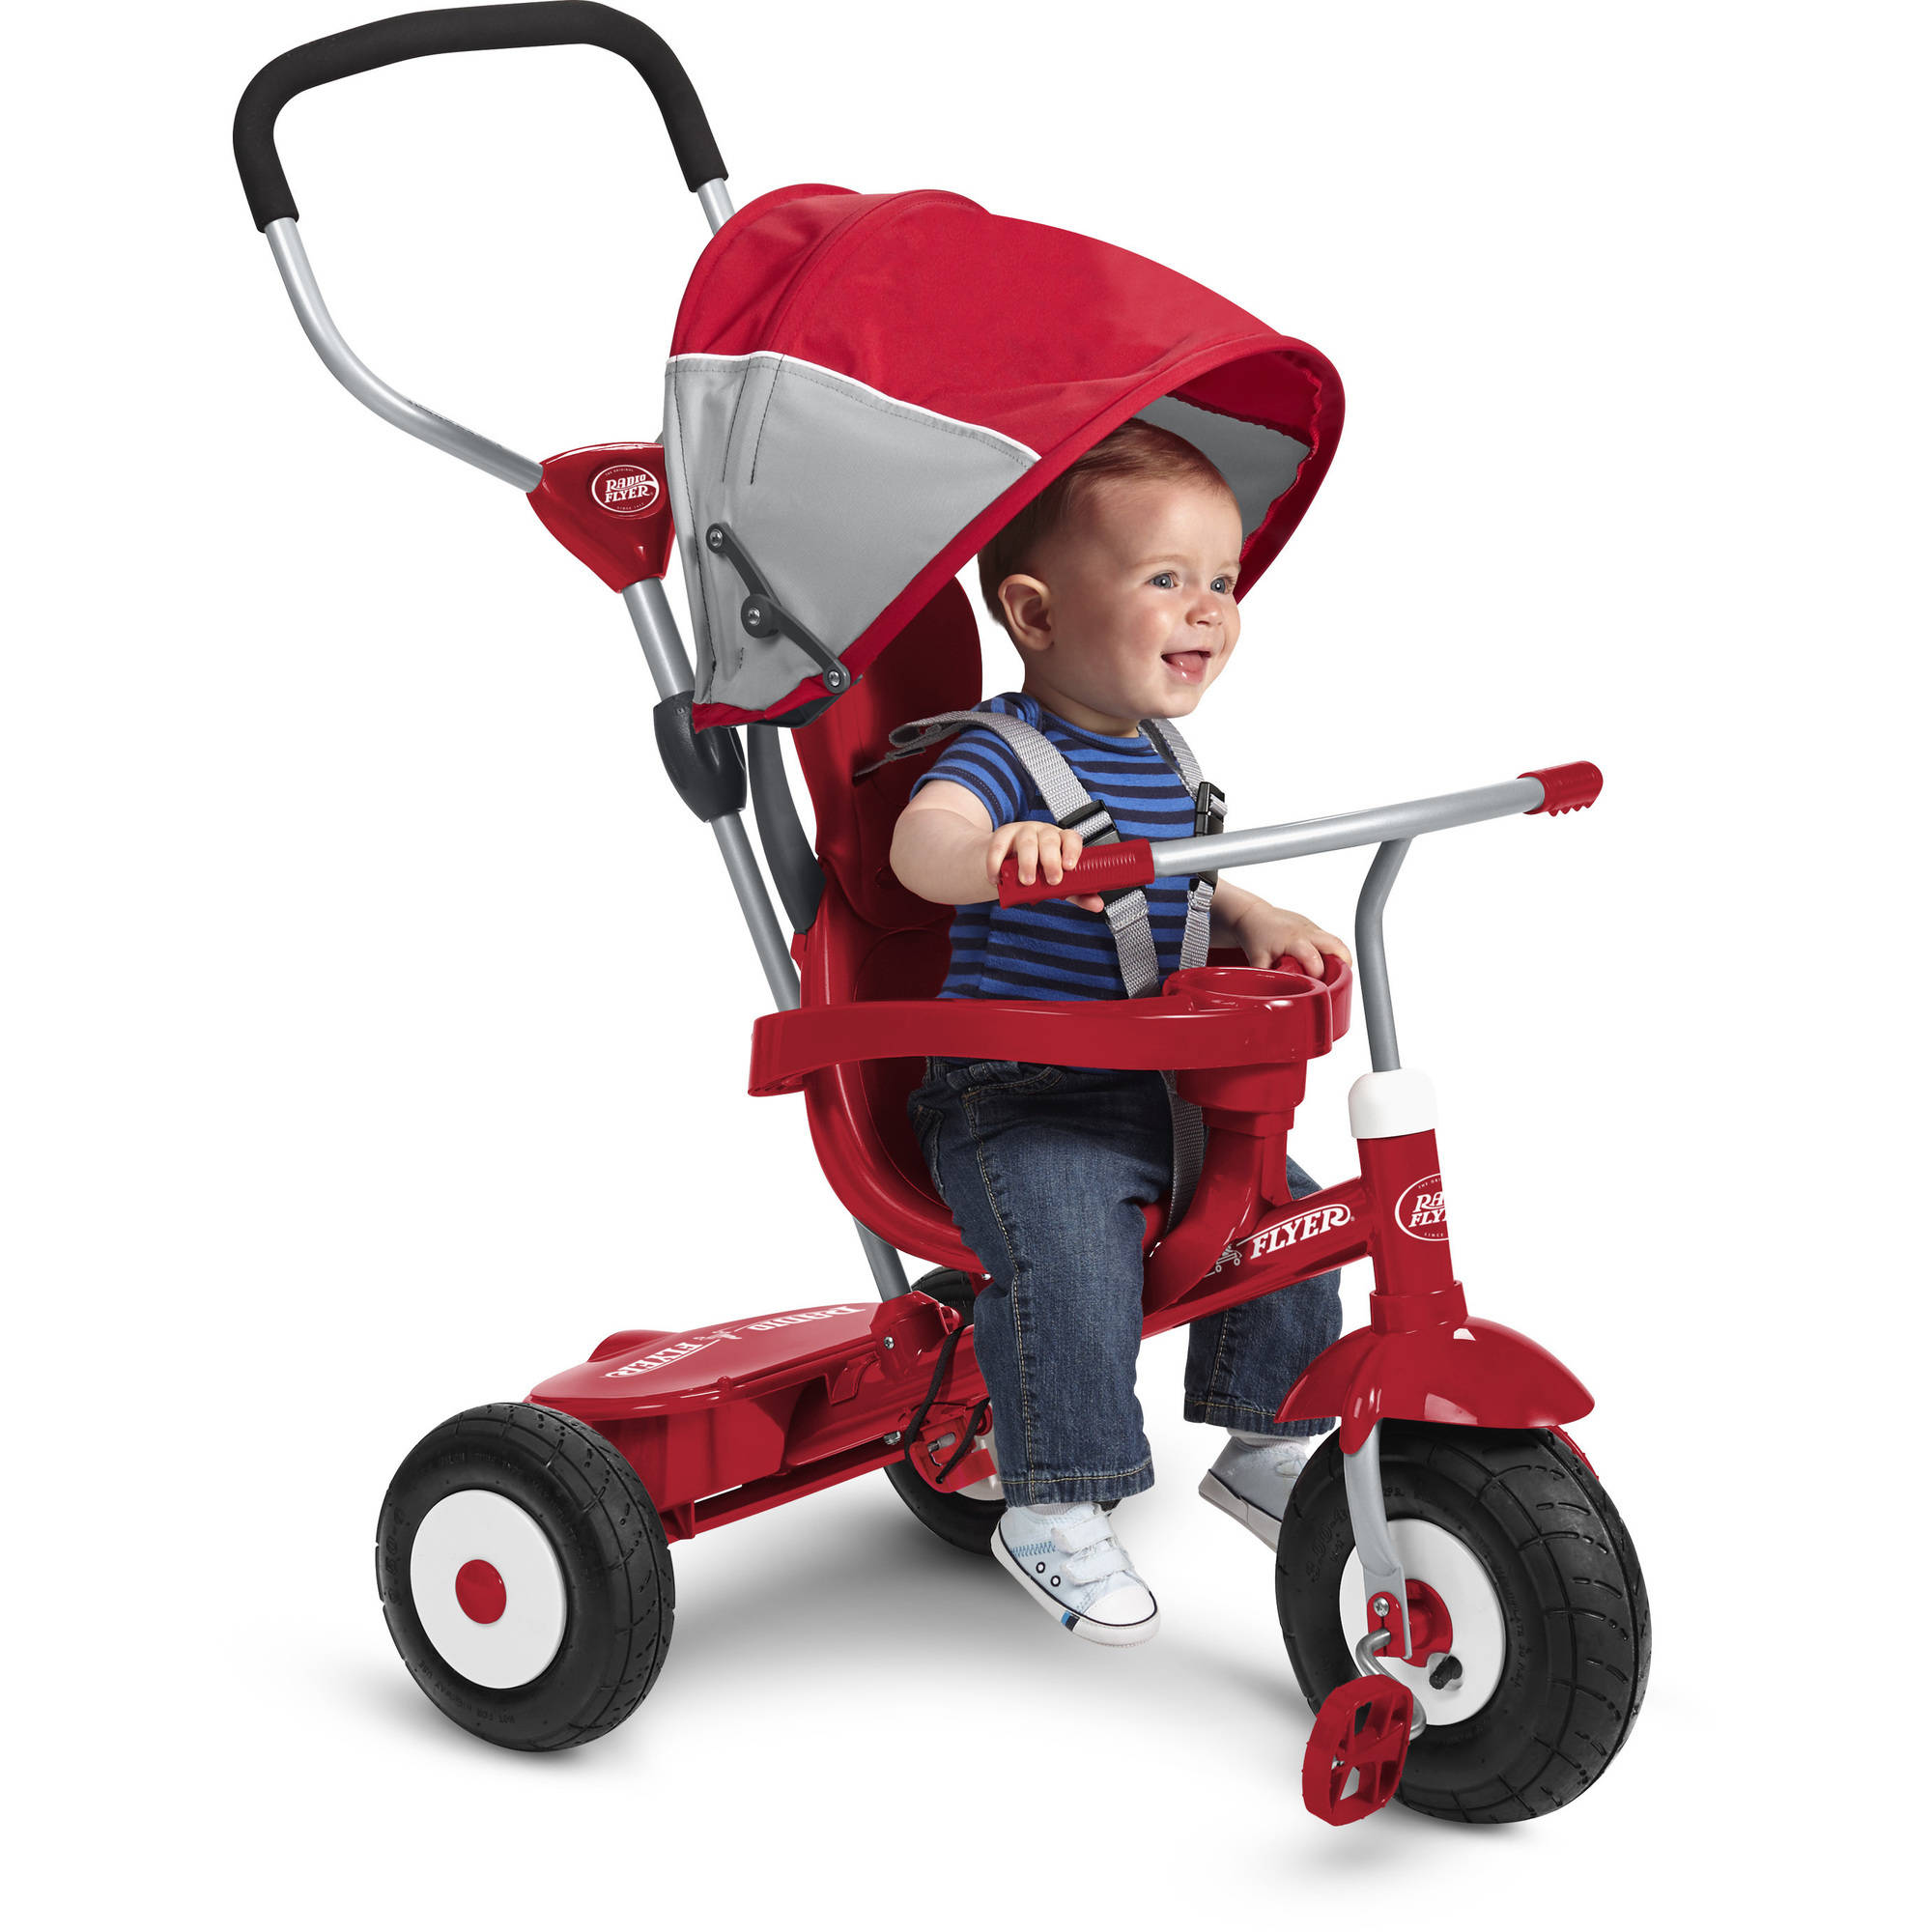 Radio Flyer All-Terrain Stroll 'N Trike Ride-On, Red